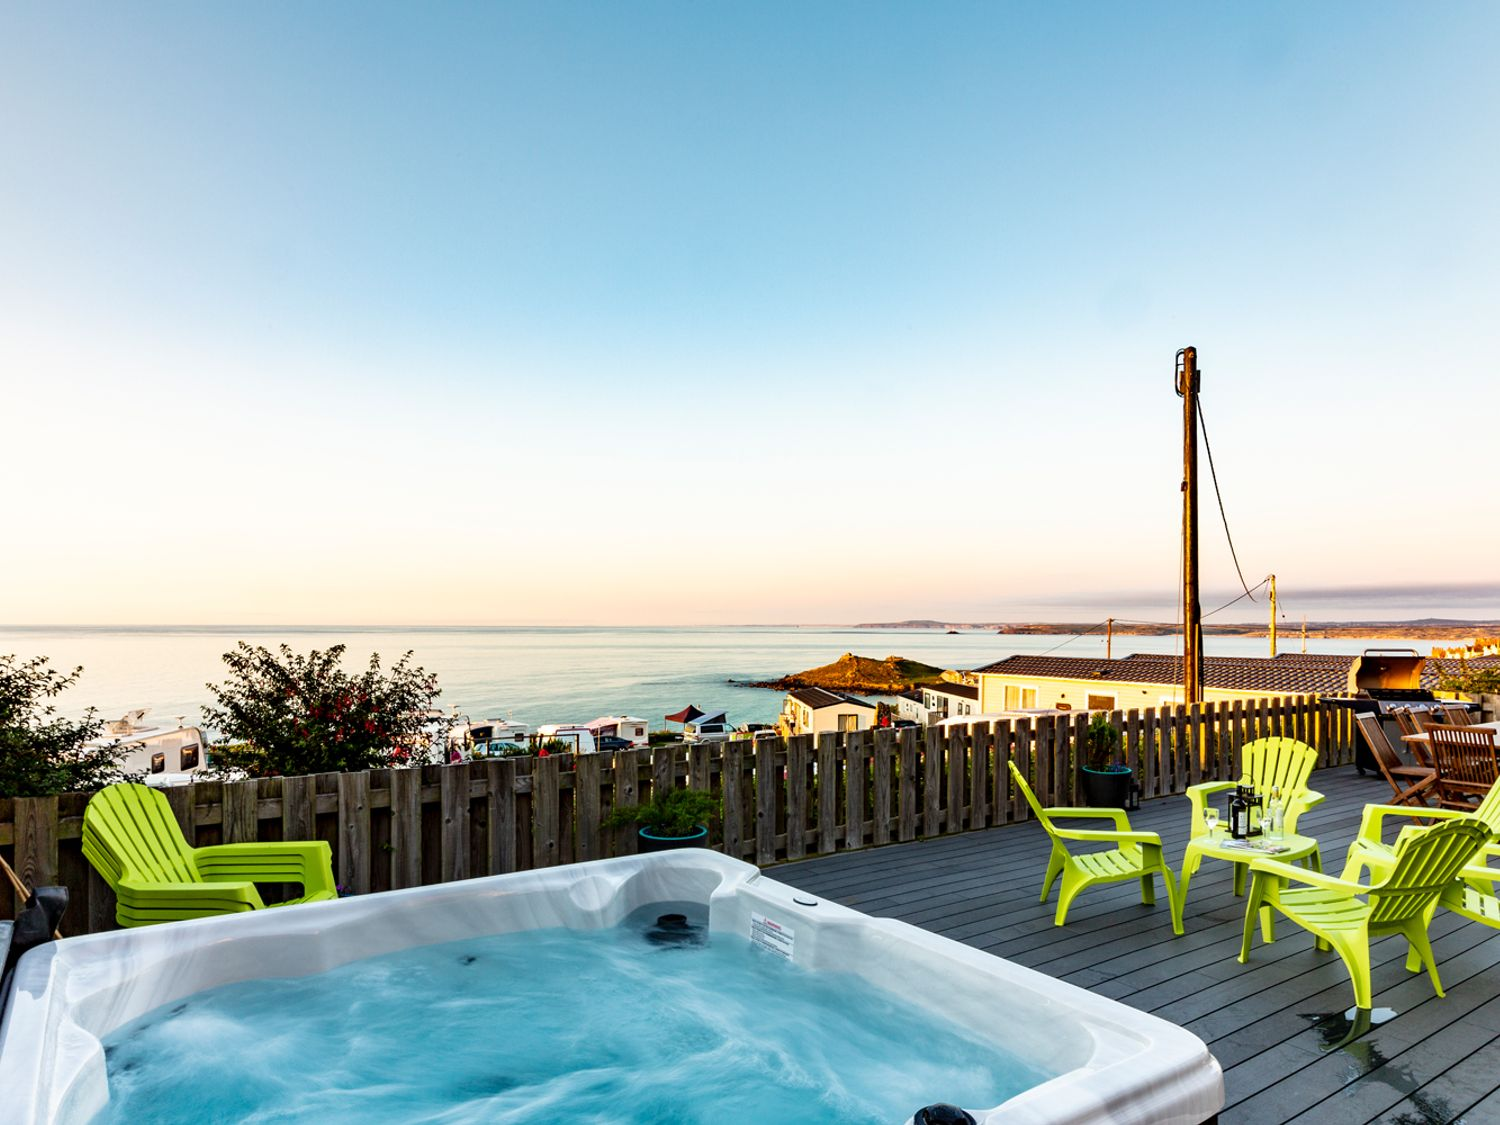 Hot Tub Holiday Cottages on the Beach